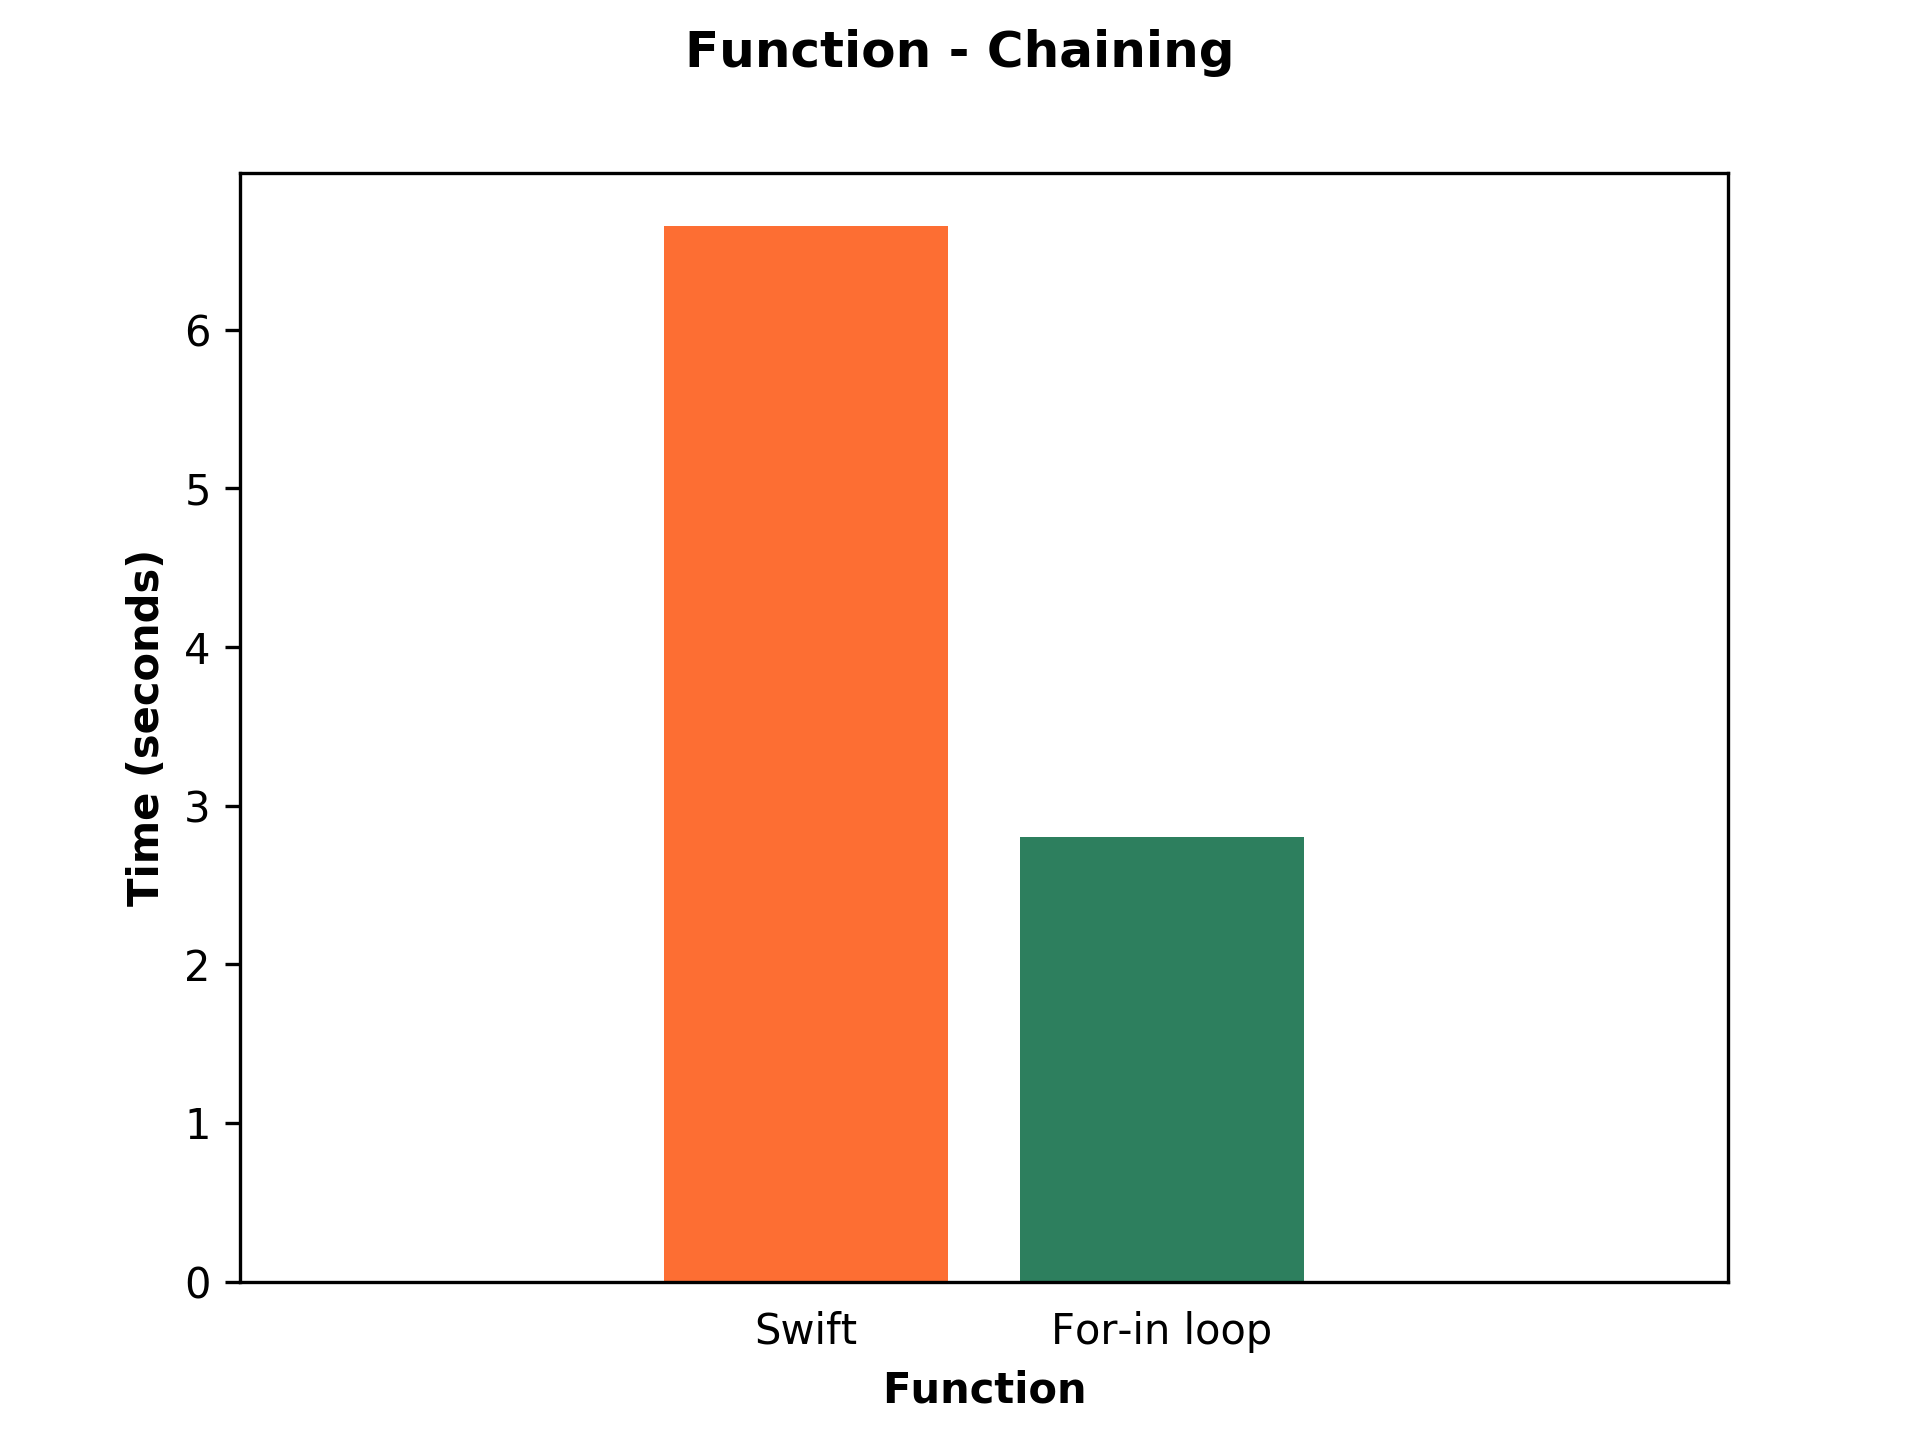 Bar chart shows performance of Swift and For-in loop of function chaining.